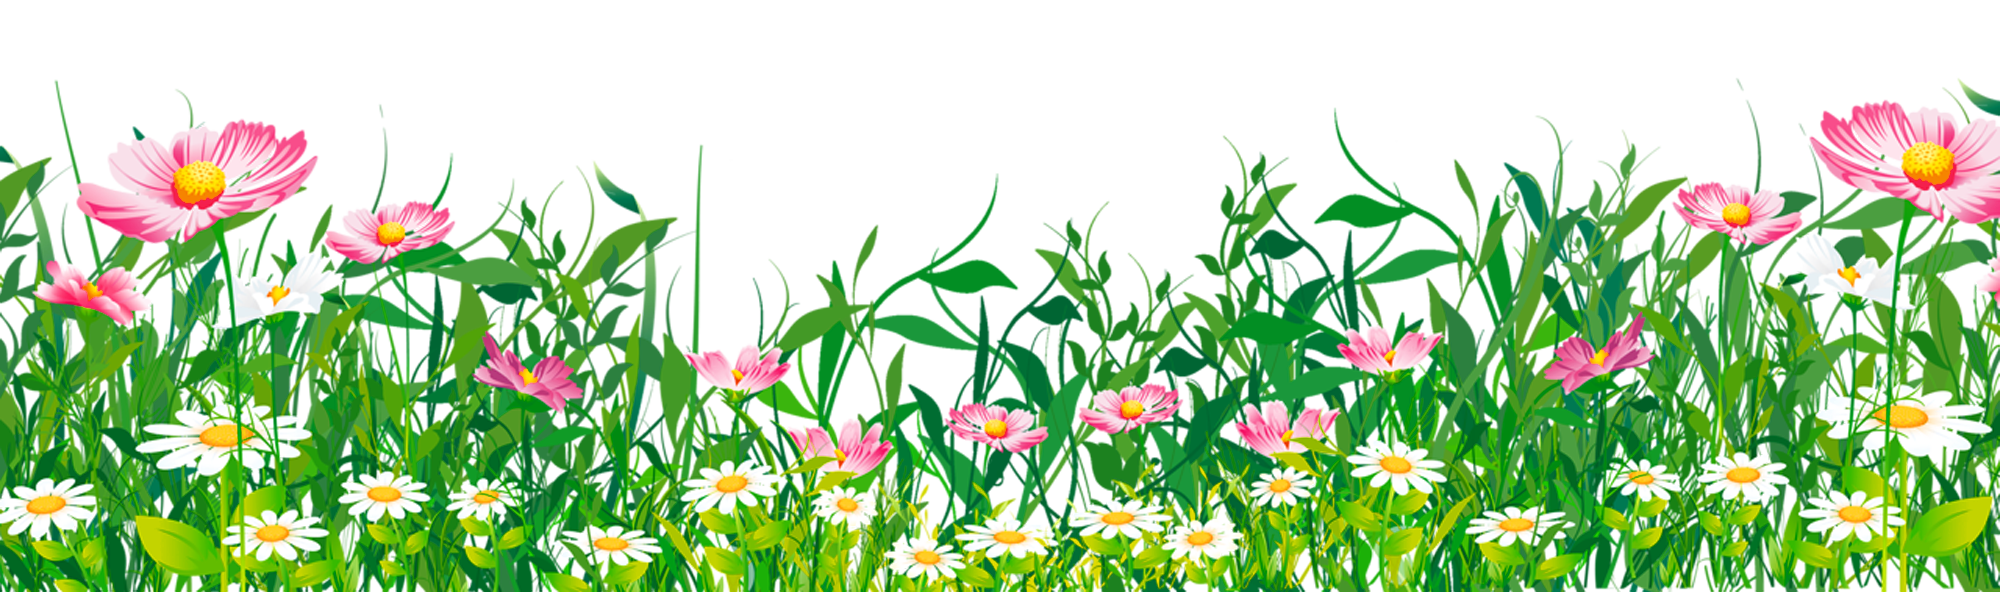 Grass with flowers png. Outside clipart field flower